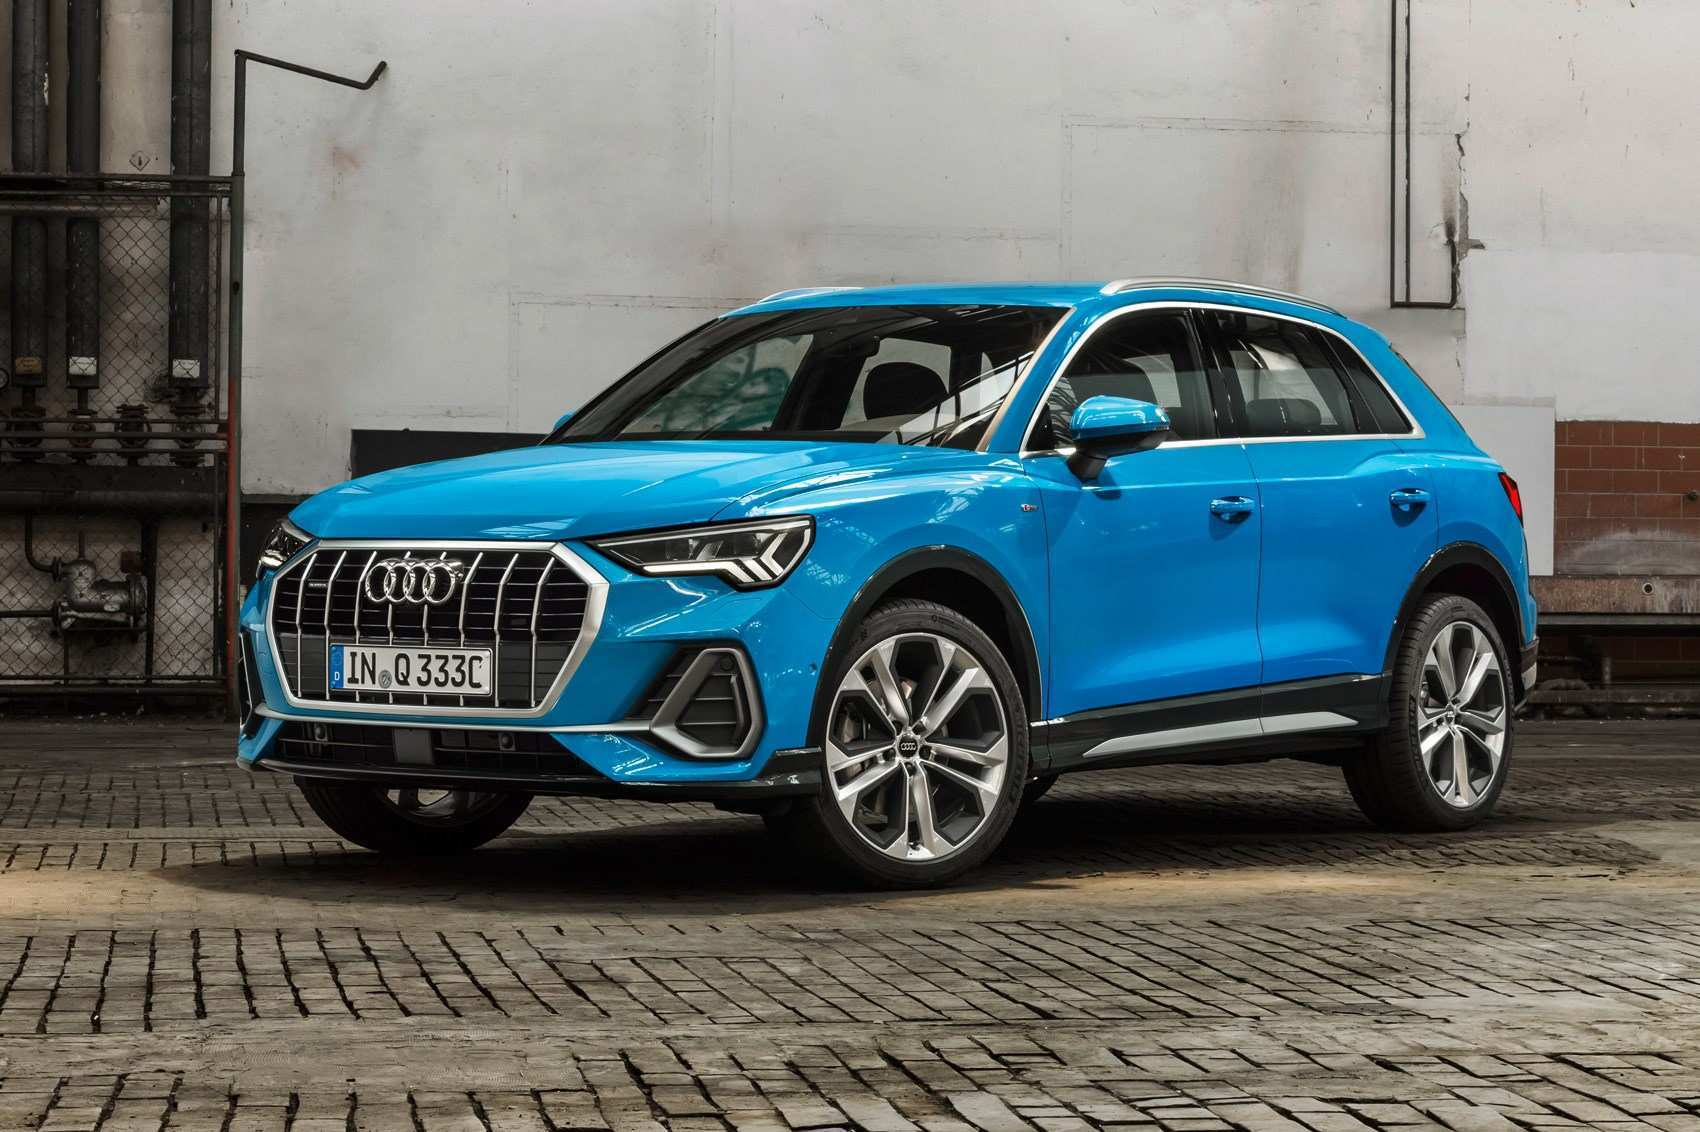 42 Best Review The Modelli Audi 2019 New Review Redesign with The Modelli Audi 2019 New Review